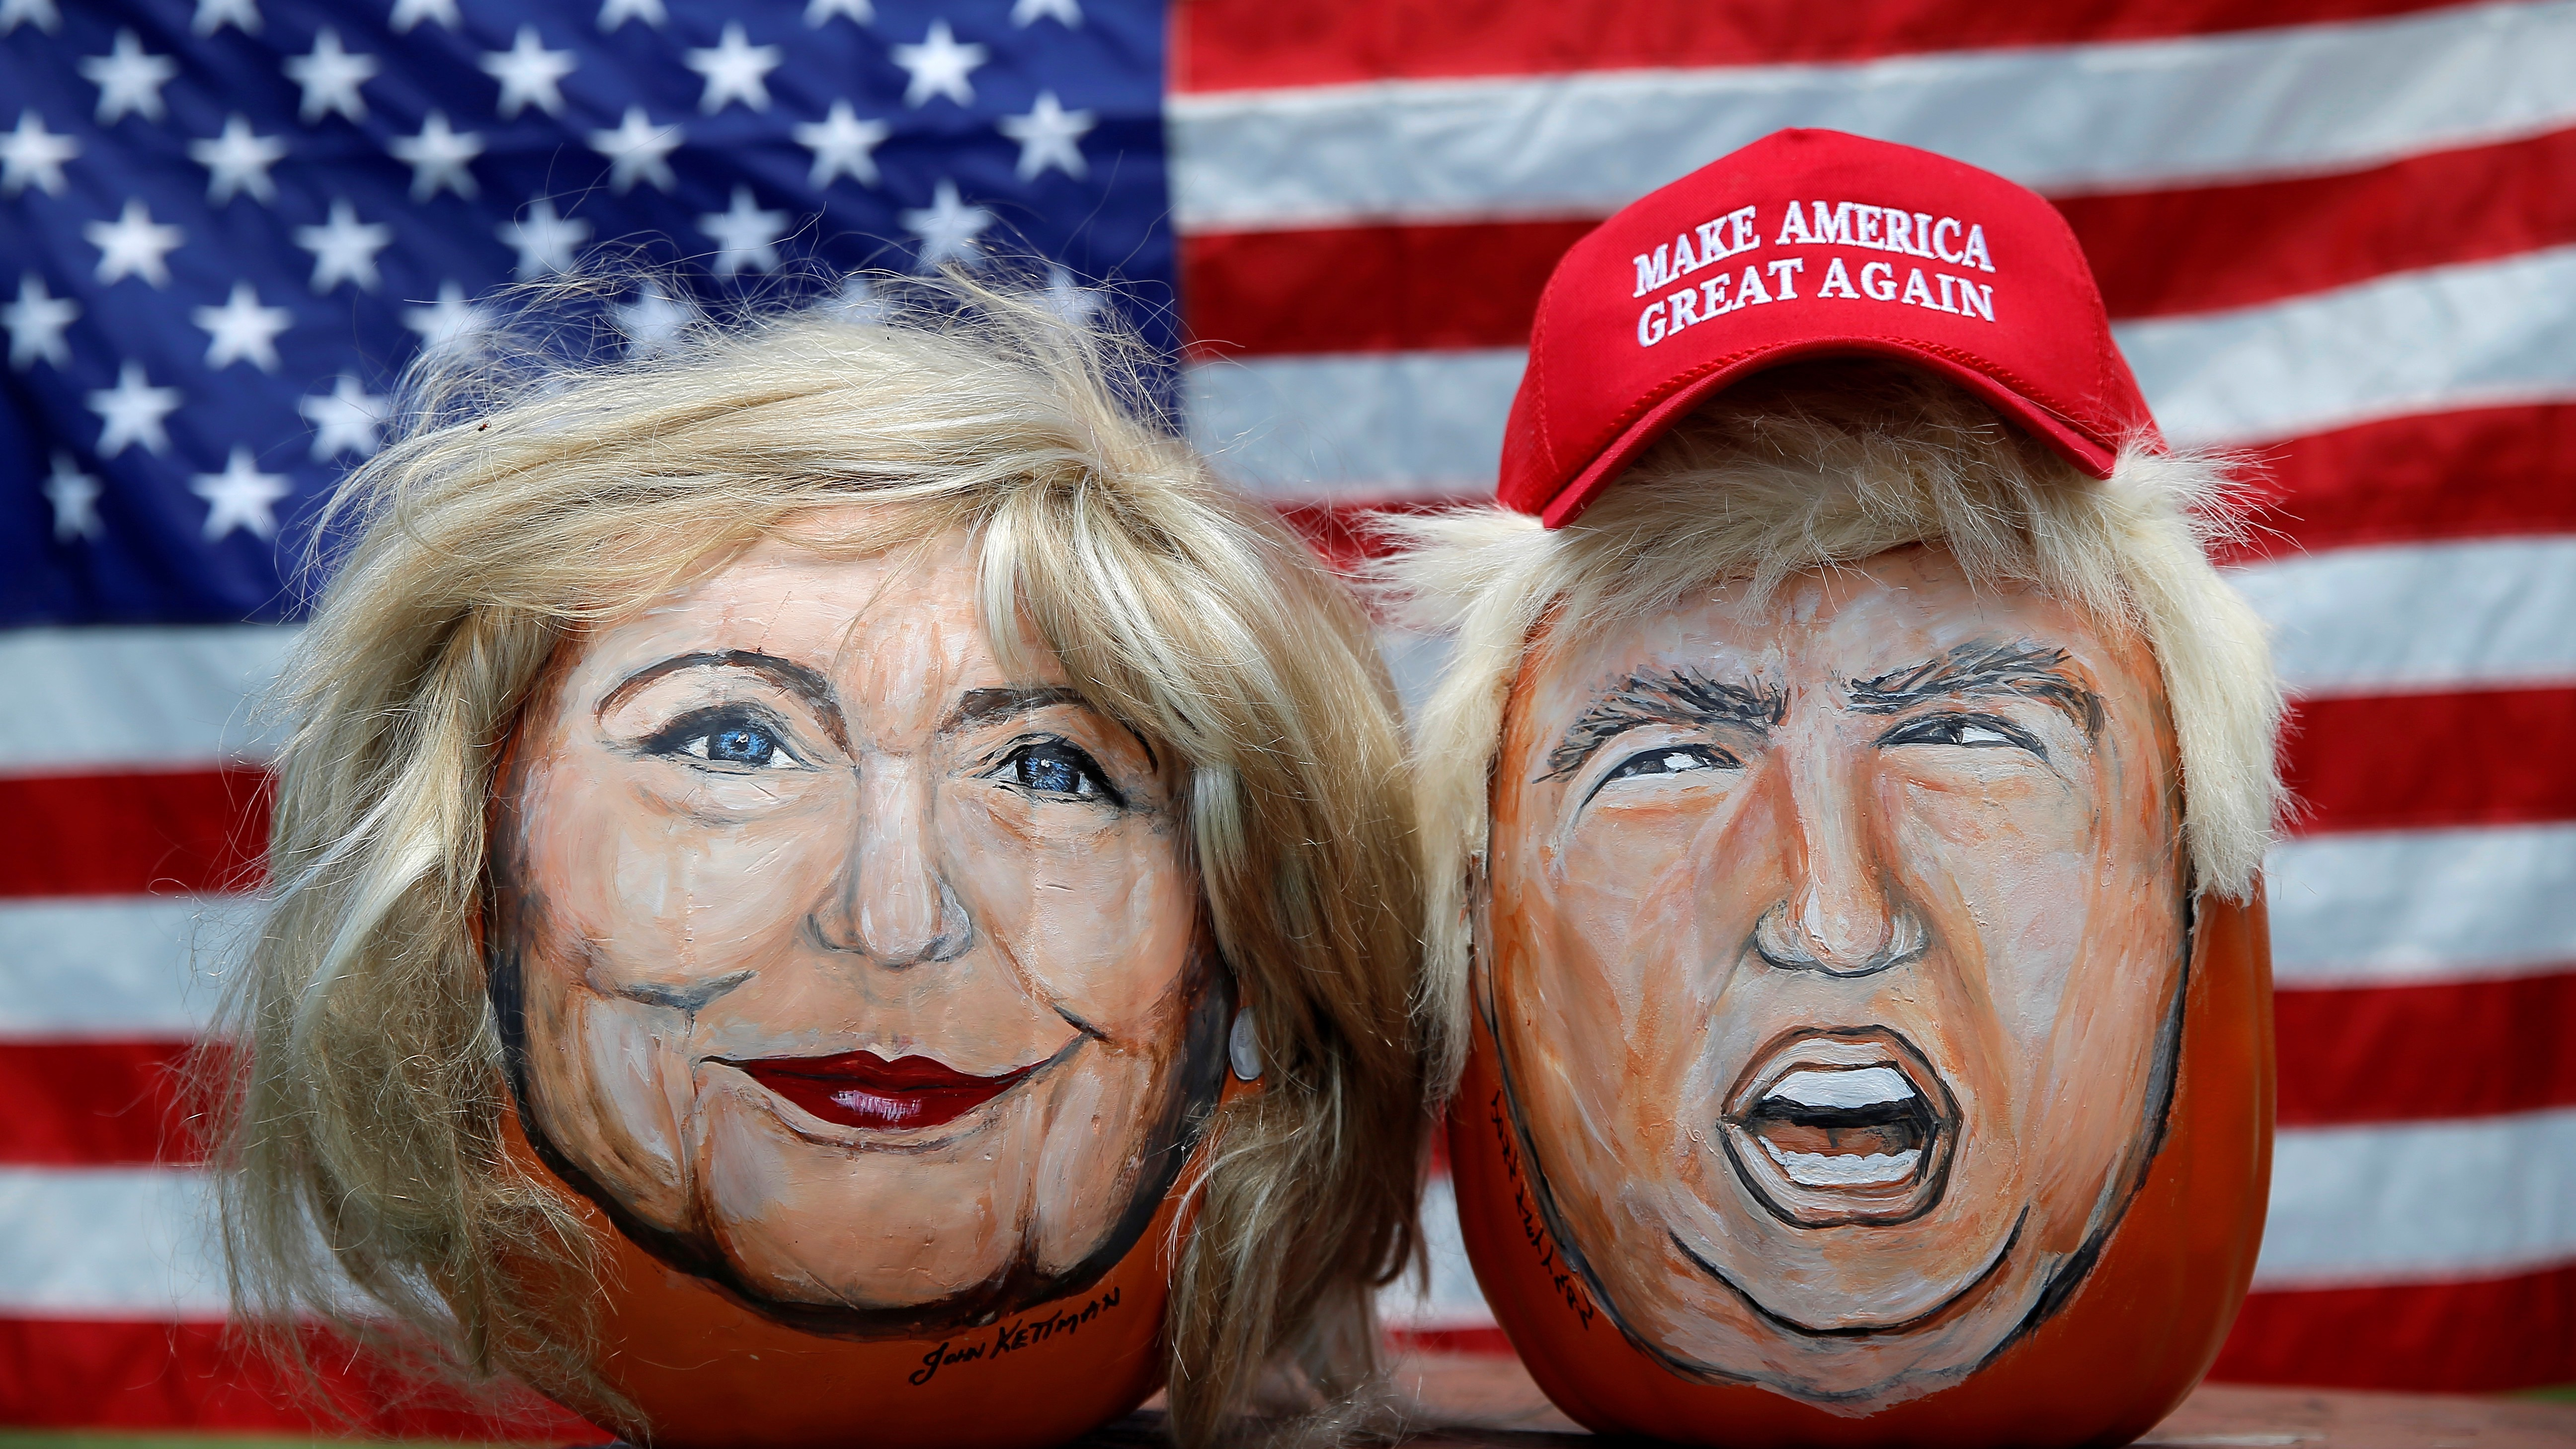 The images of U.S. Democratic presidential candidate Hillary Clinton (L) and Republican Presidential candidate Donald Trump are seen painted on decorative pumpkins created by artist John Kettman in LaSalle, Illinois, U.S., June 8, 2016.     REUTERS/Jim Young      TPX IMAGES OF THE DAY      - RTSGMTI